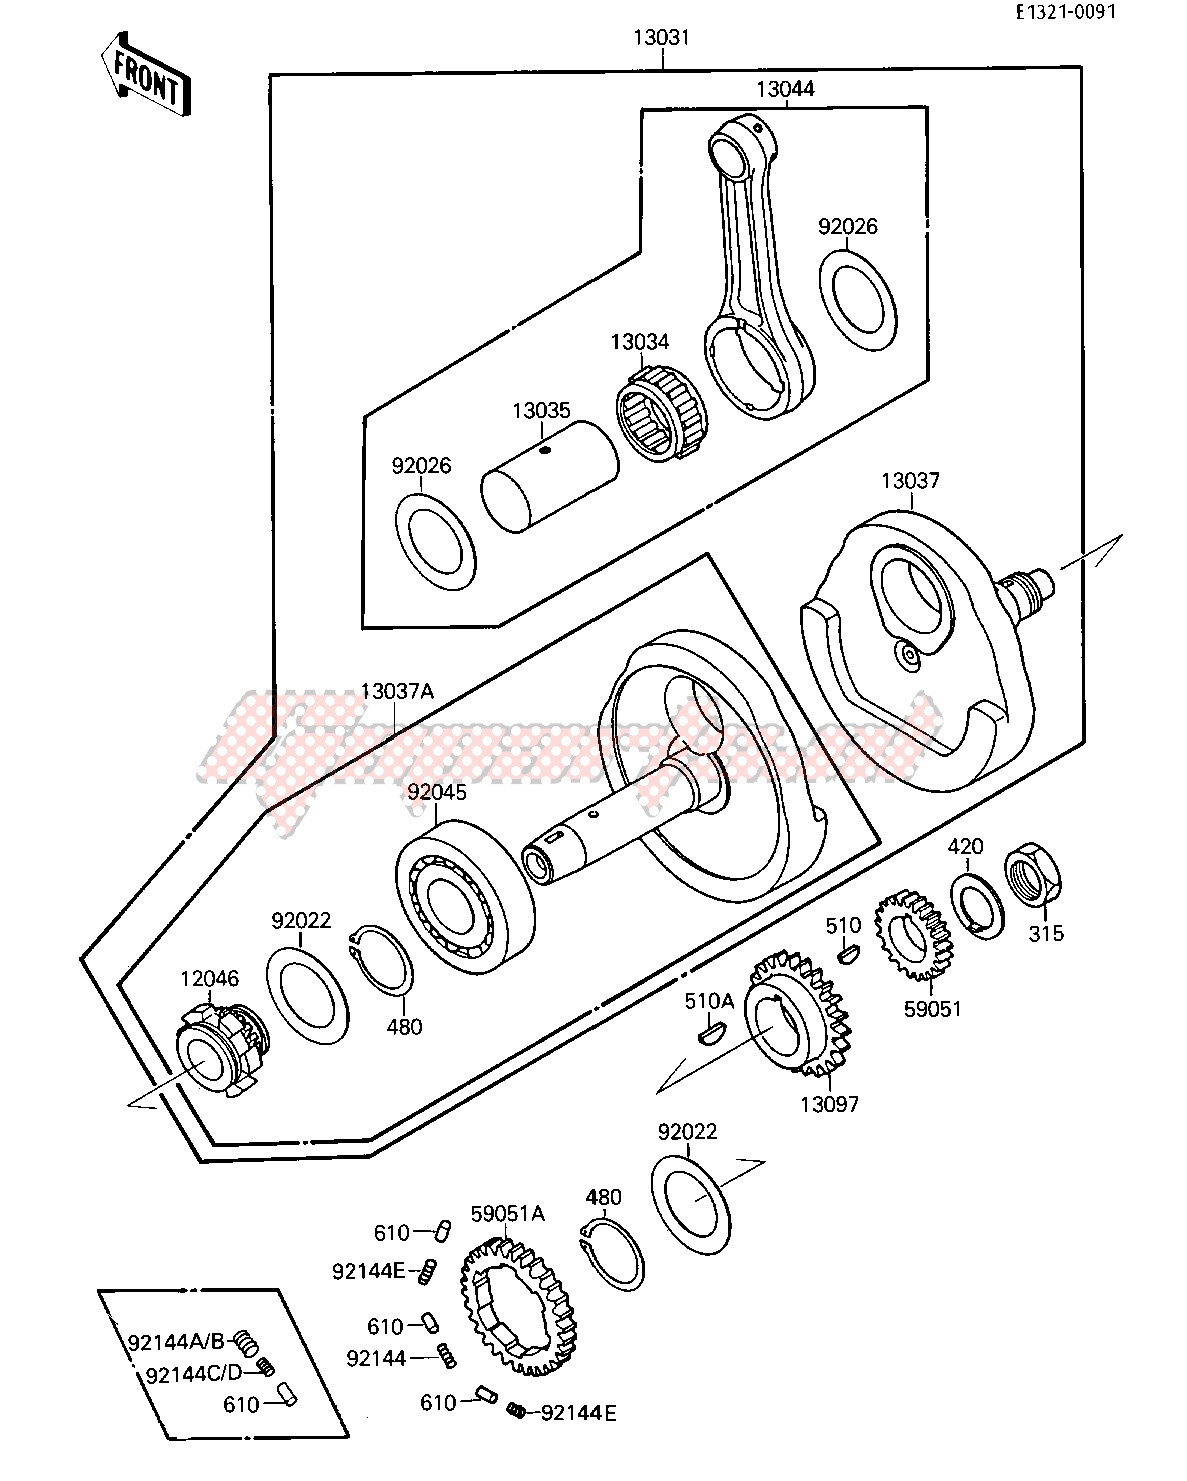 Engine-CRANKSHAFT -- 010527- -